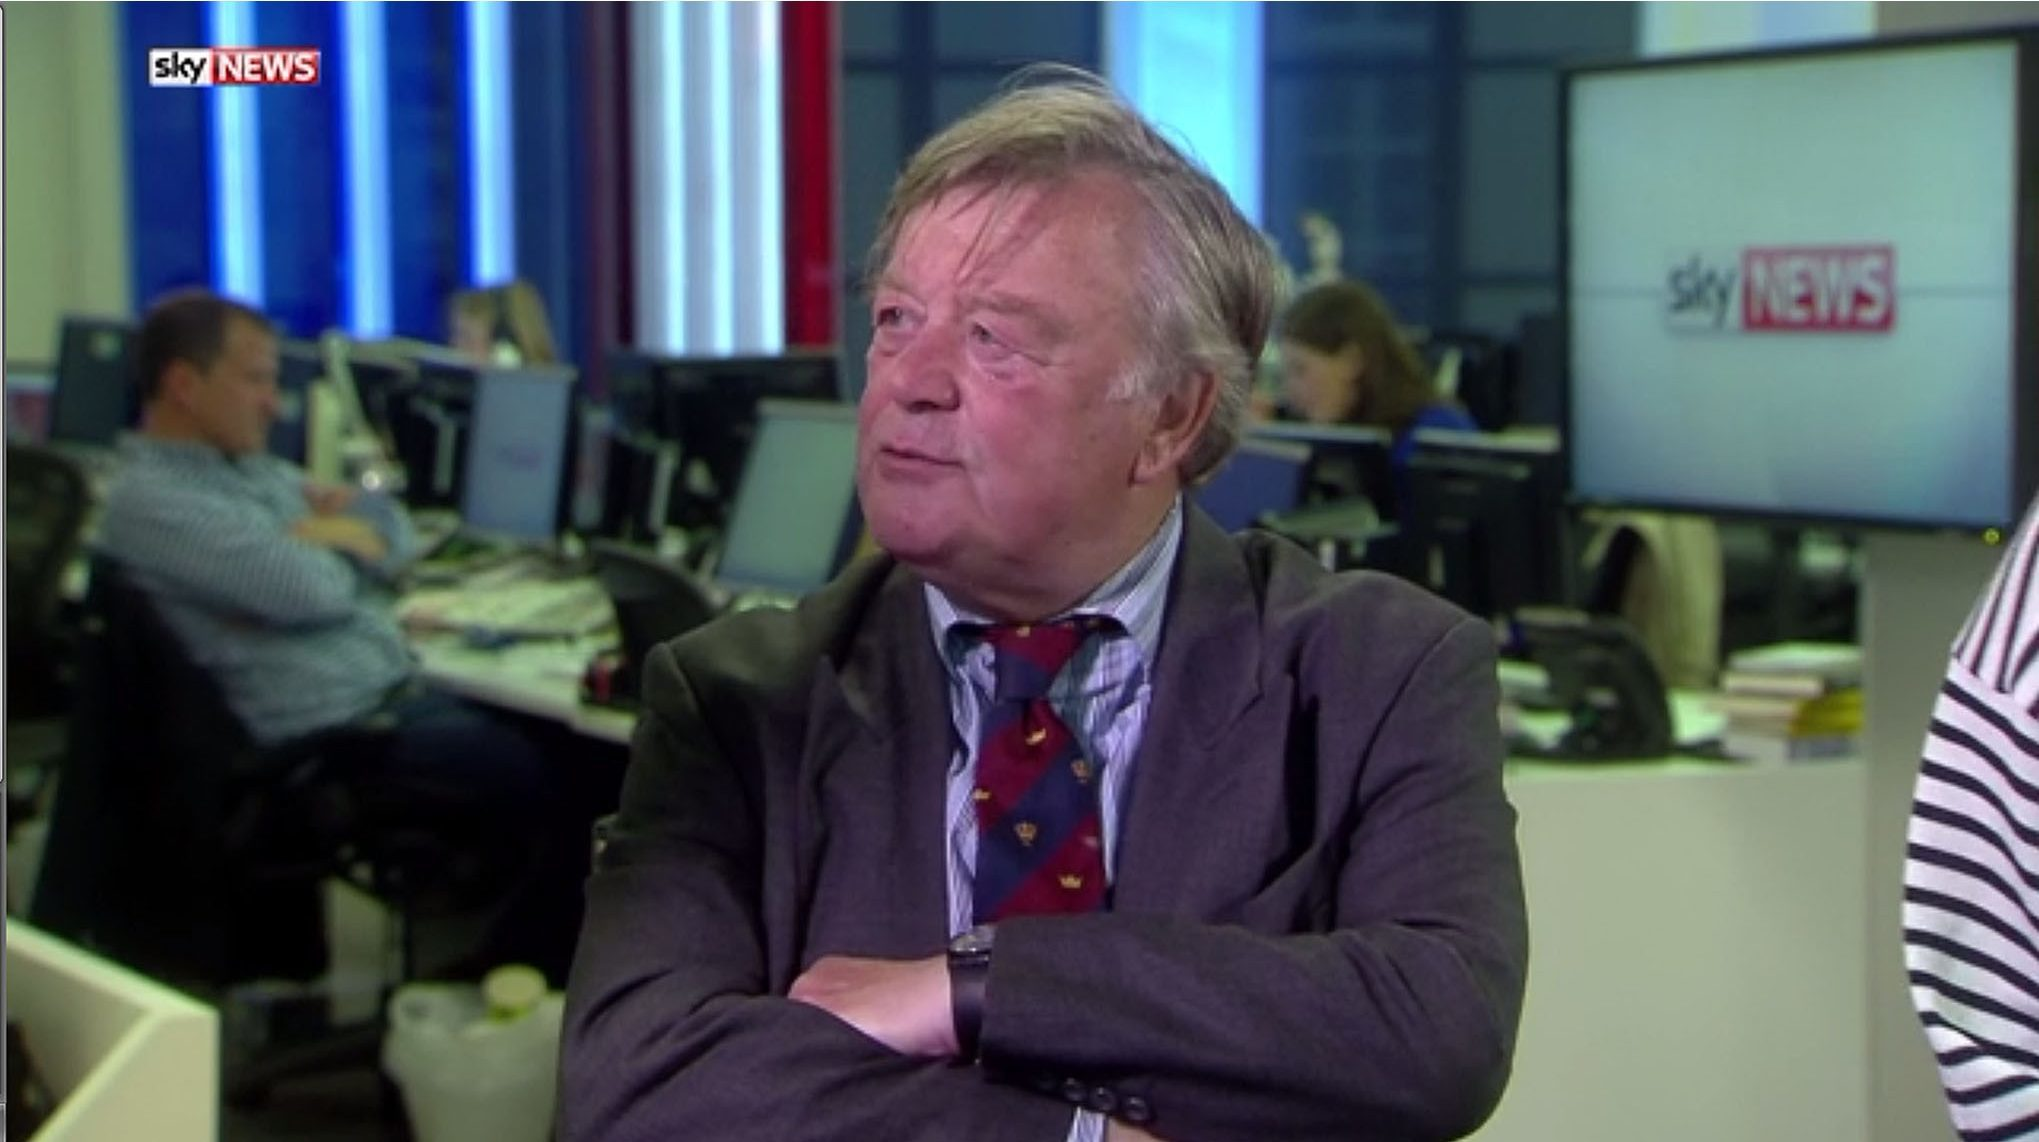 Former chancellor Ken Clarke ridiculed contenders for the Tory leadership, as voting begun in the first stage of the process to decide the UK's new Prime Minister.